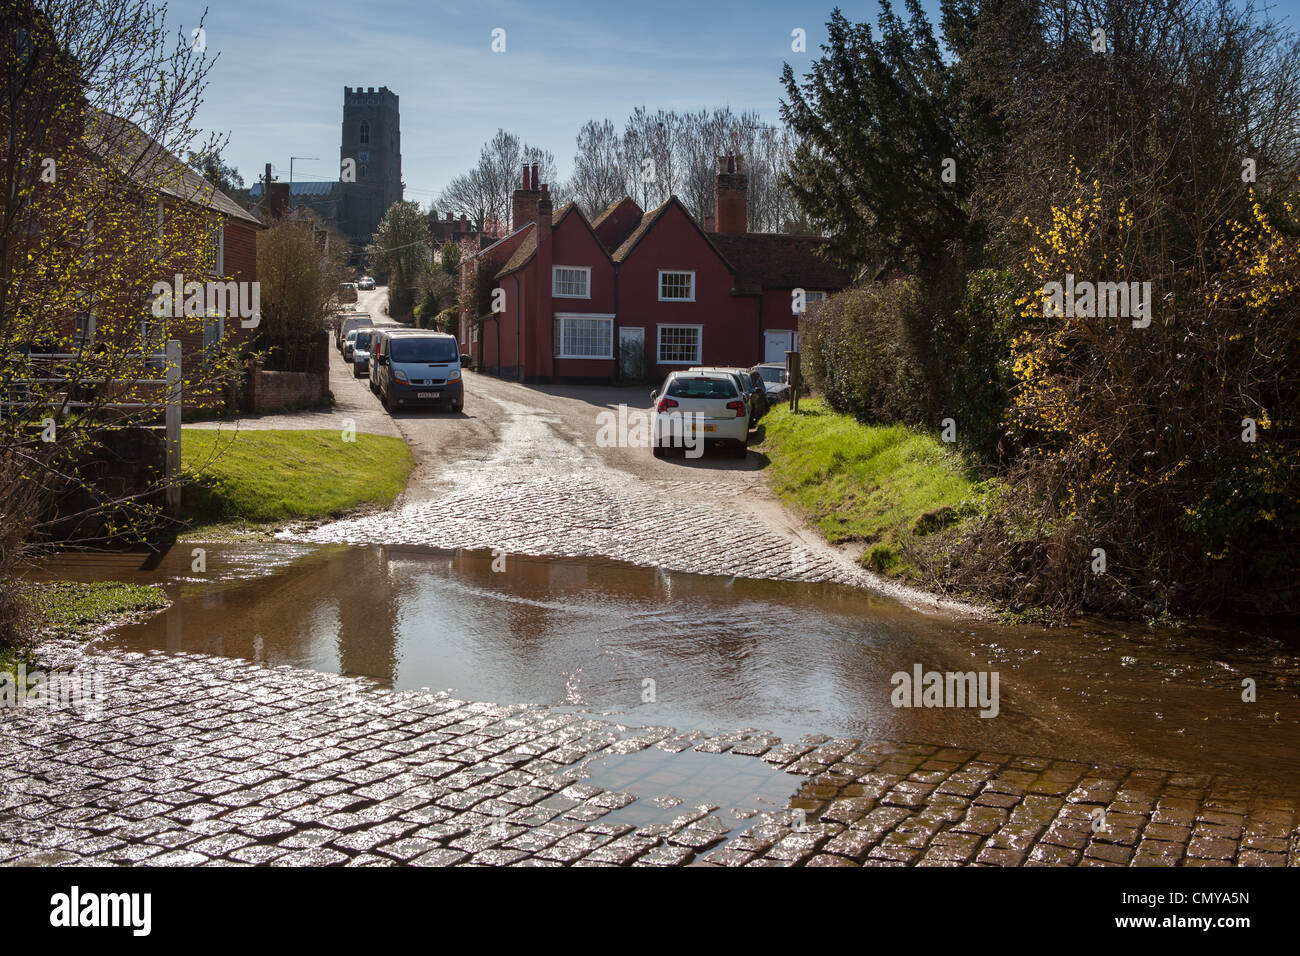 Kersey ford, river running through famous village in Babergh, Suffolk - Stock Image